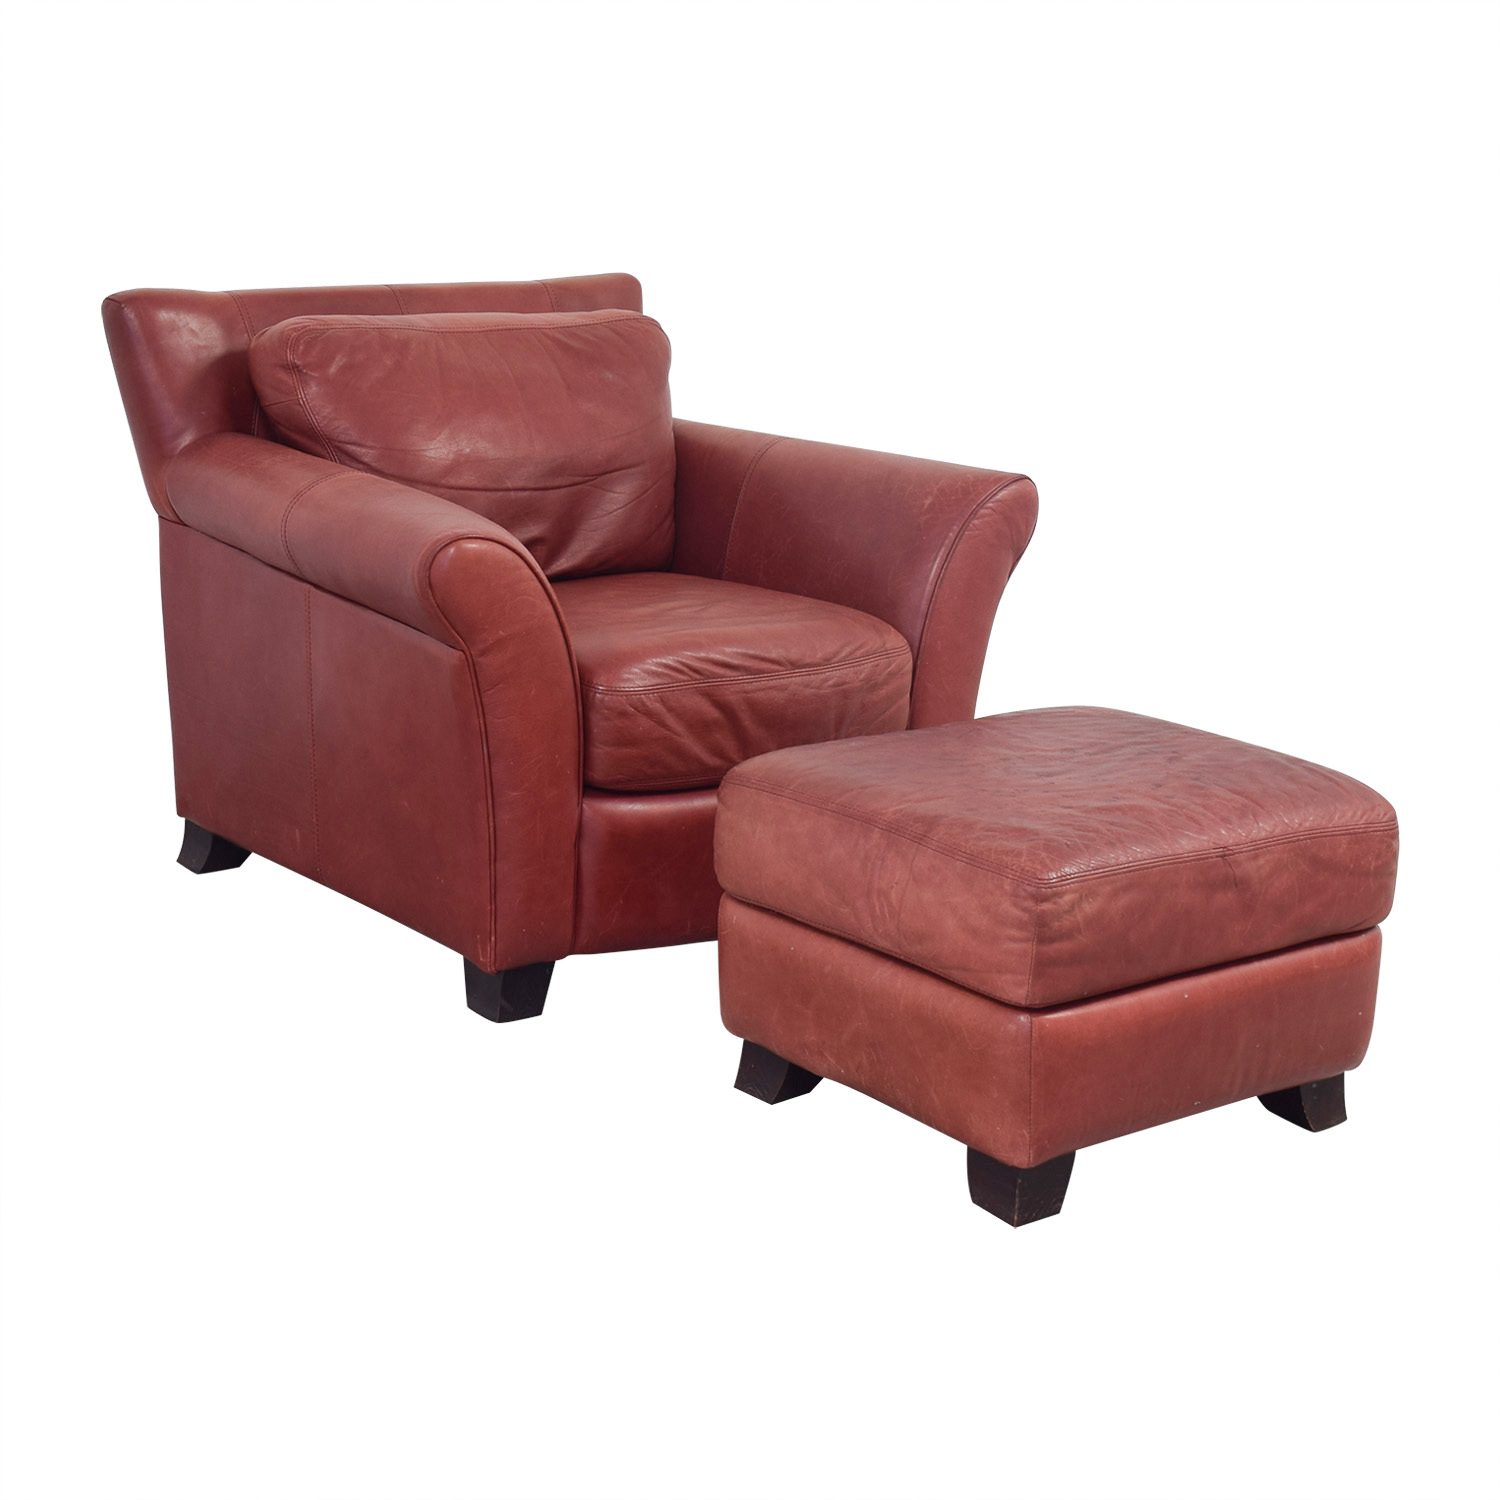 Palliser Palliser Red Leather Chair and Ottoman Accent Chairs